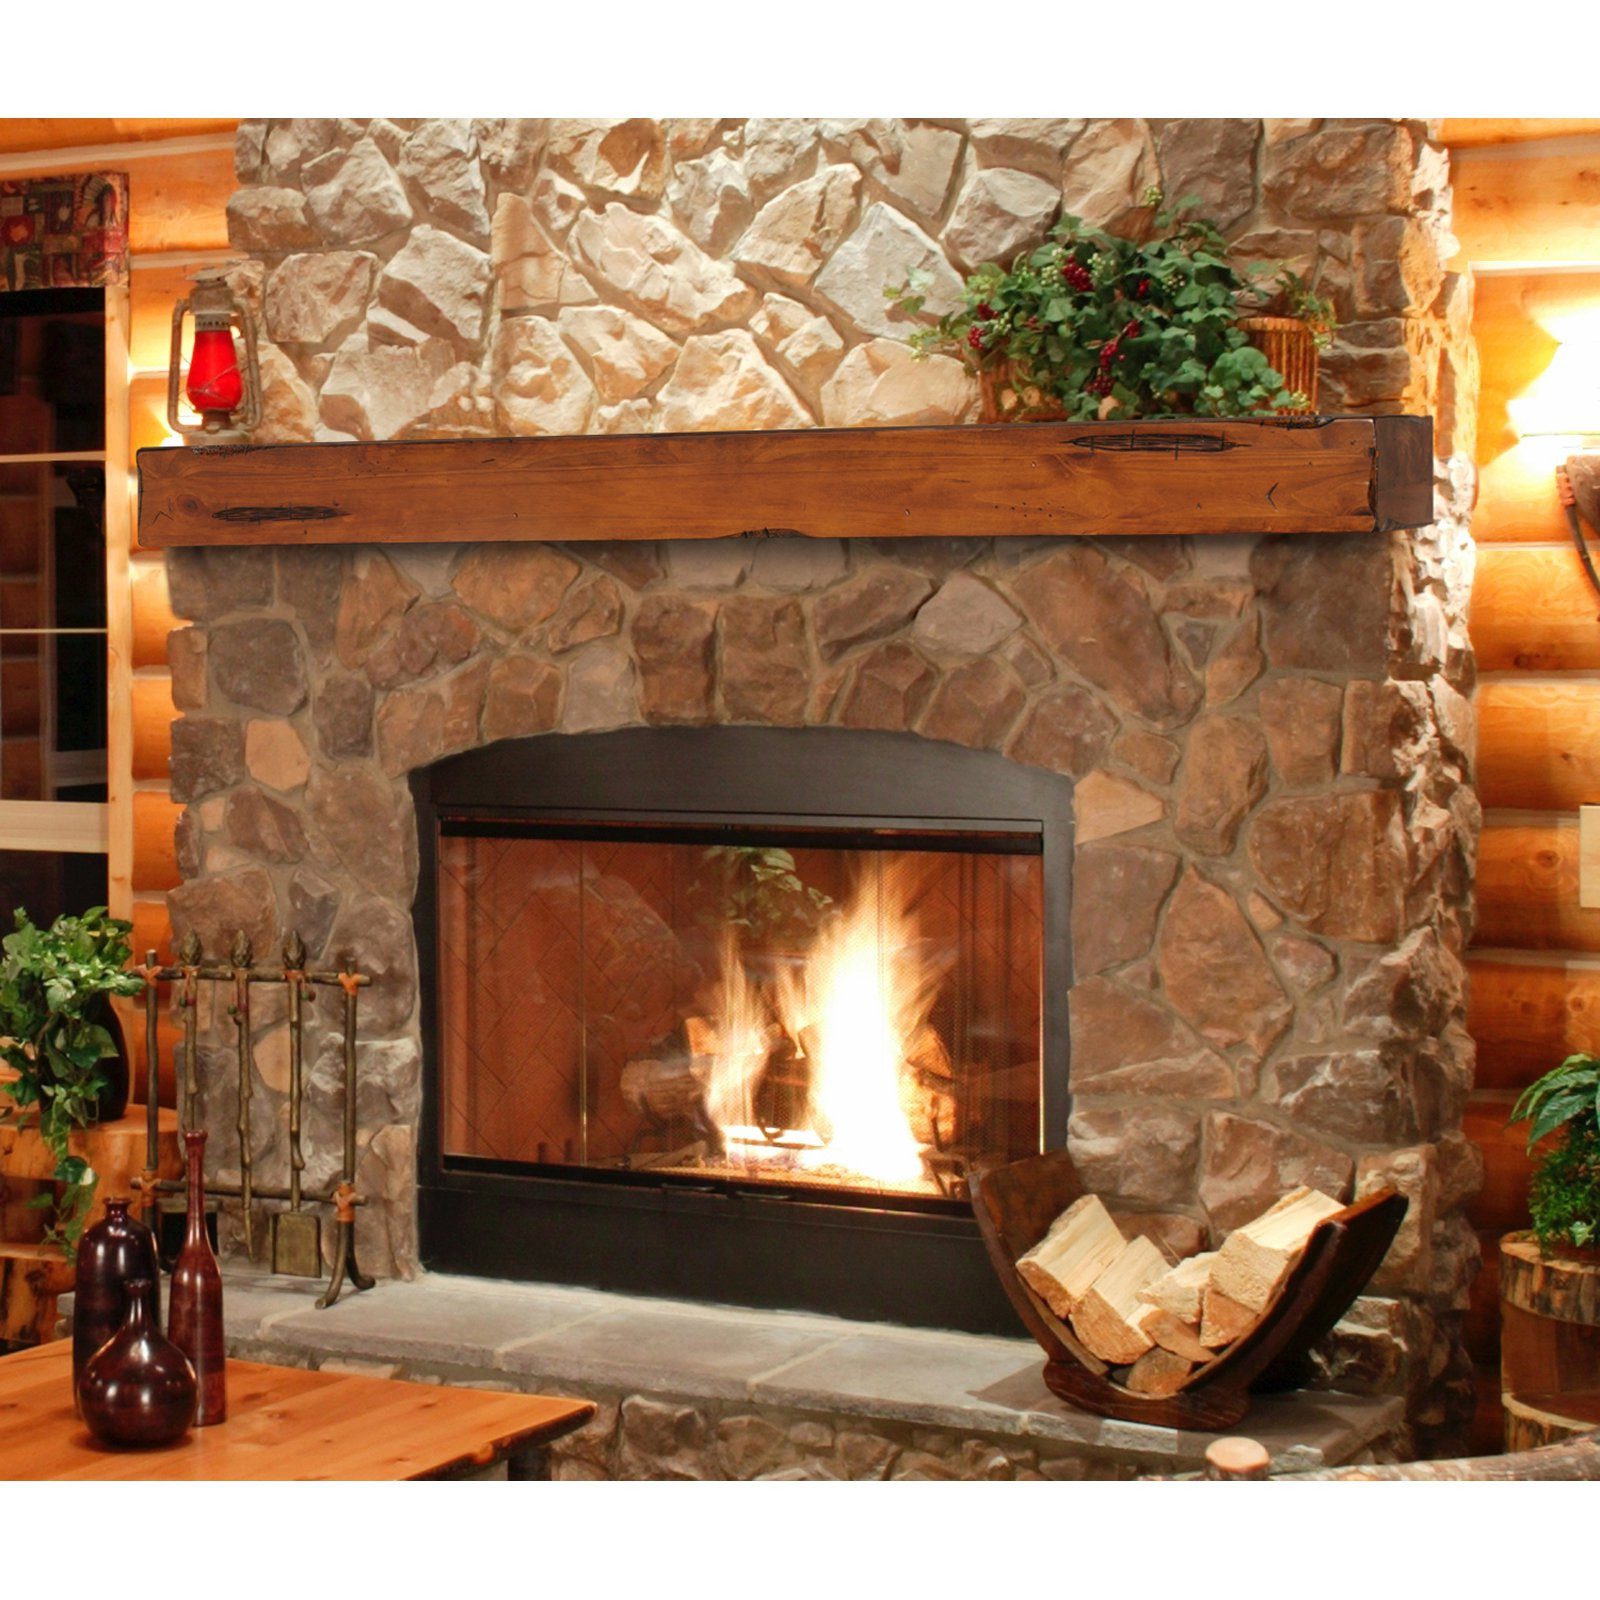 Best ideas about Fireplace Mantel Shelf . Save or Pin Pearl Mantels Shenandoah Traditional Fireplace Mantel Now.